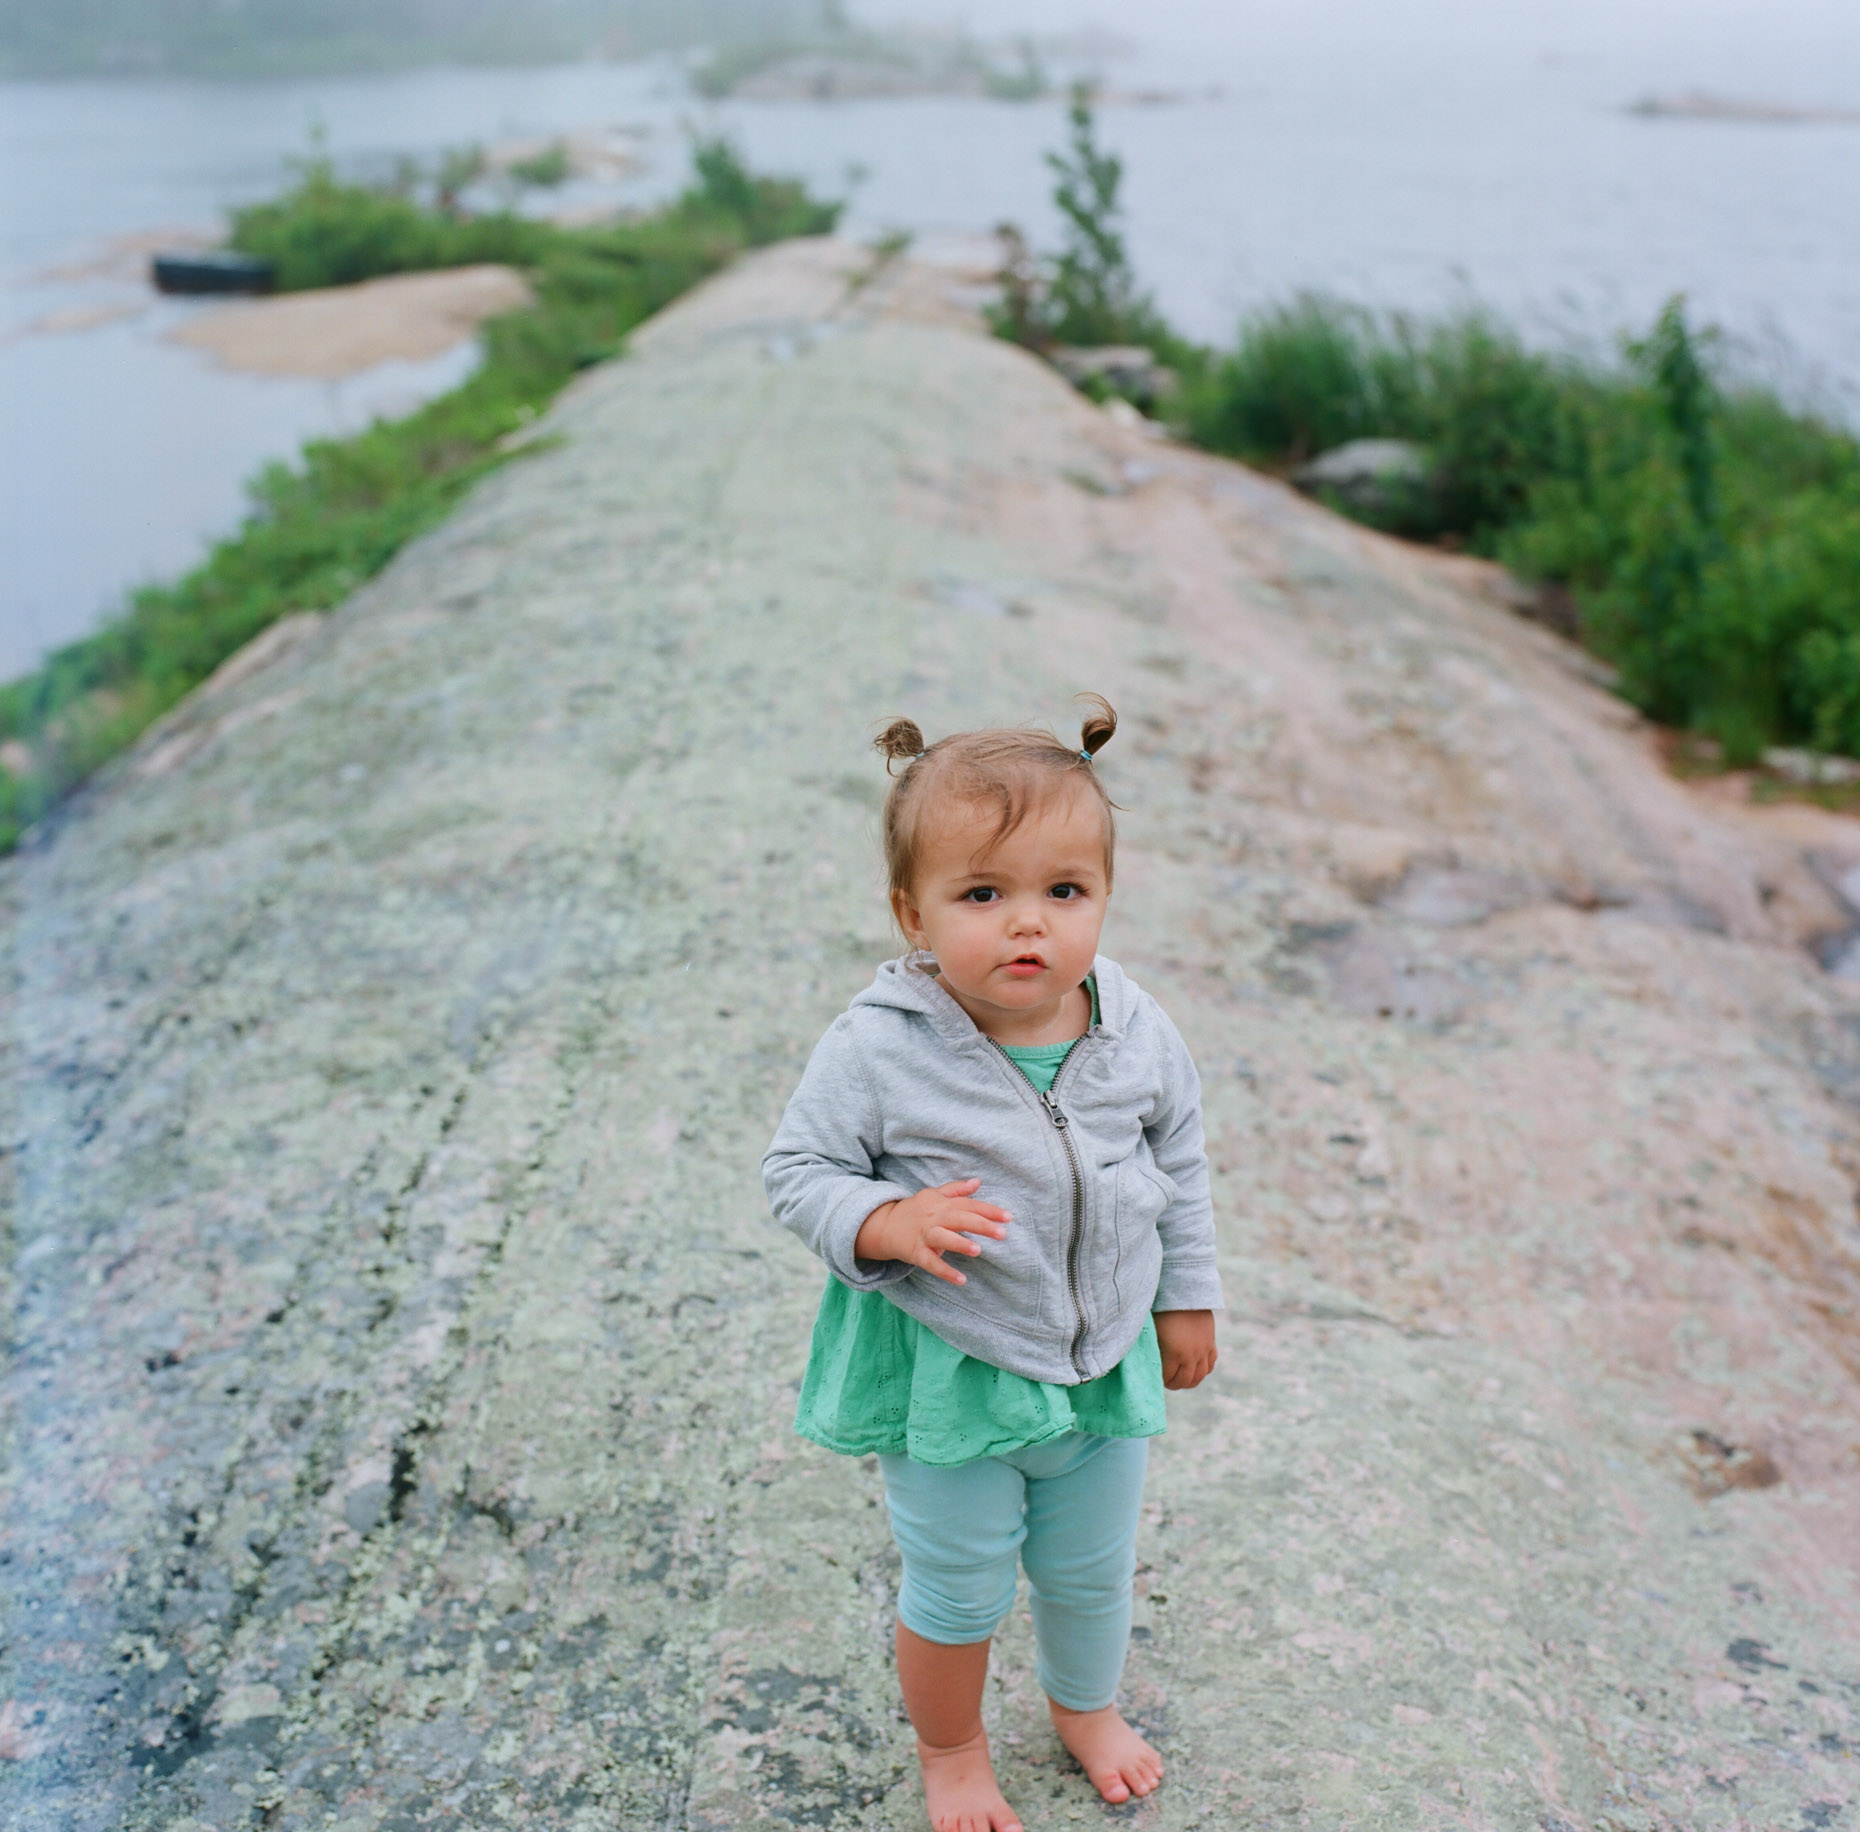 A portrait of baby sabine at Georgian Lake, Canada.